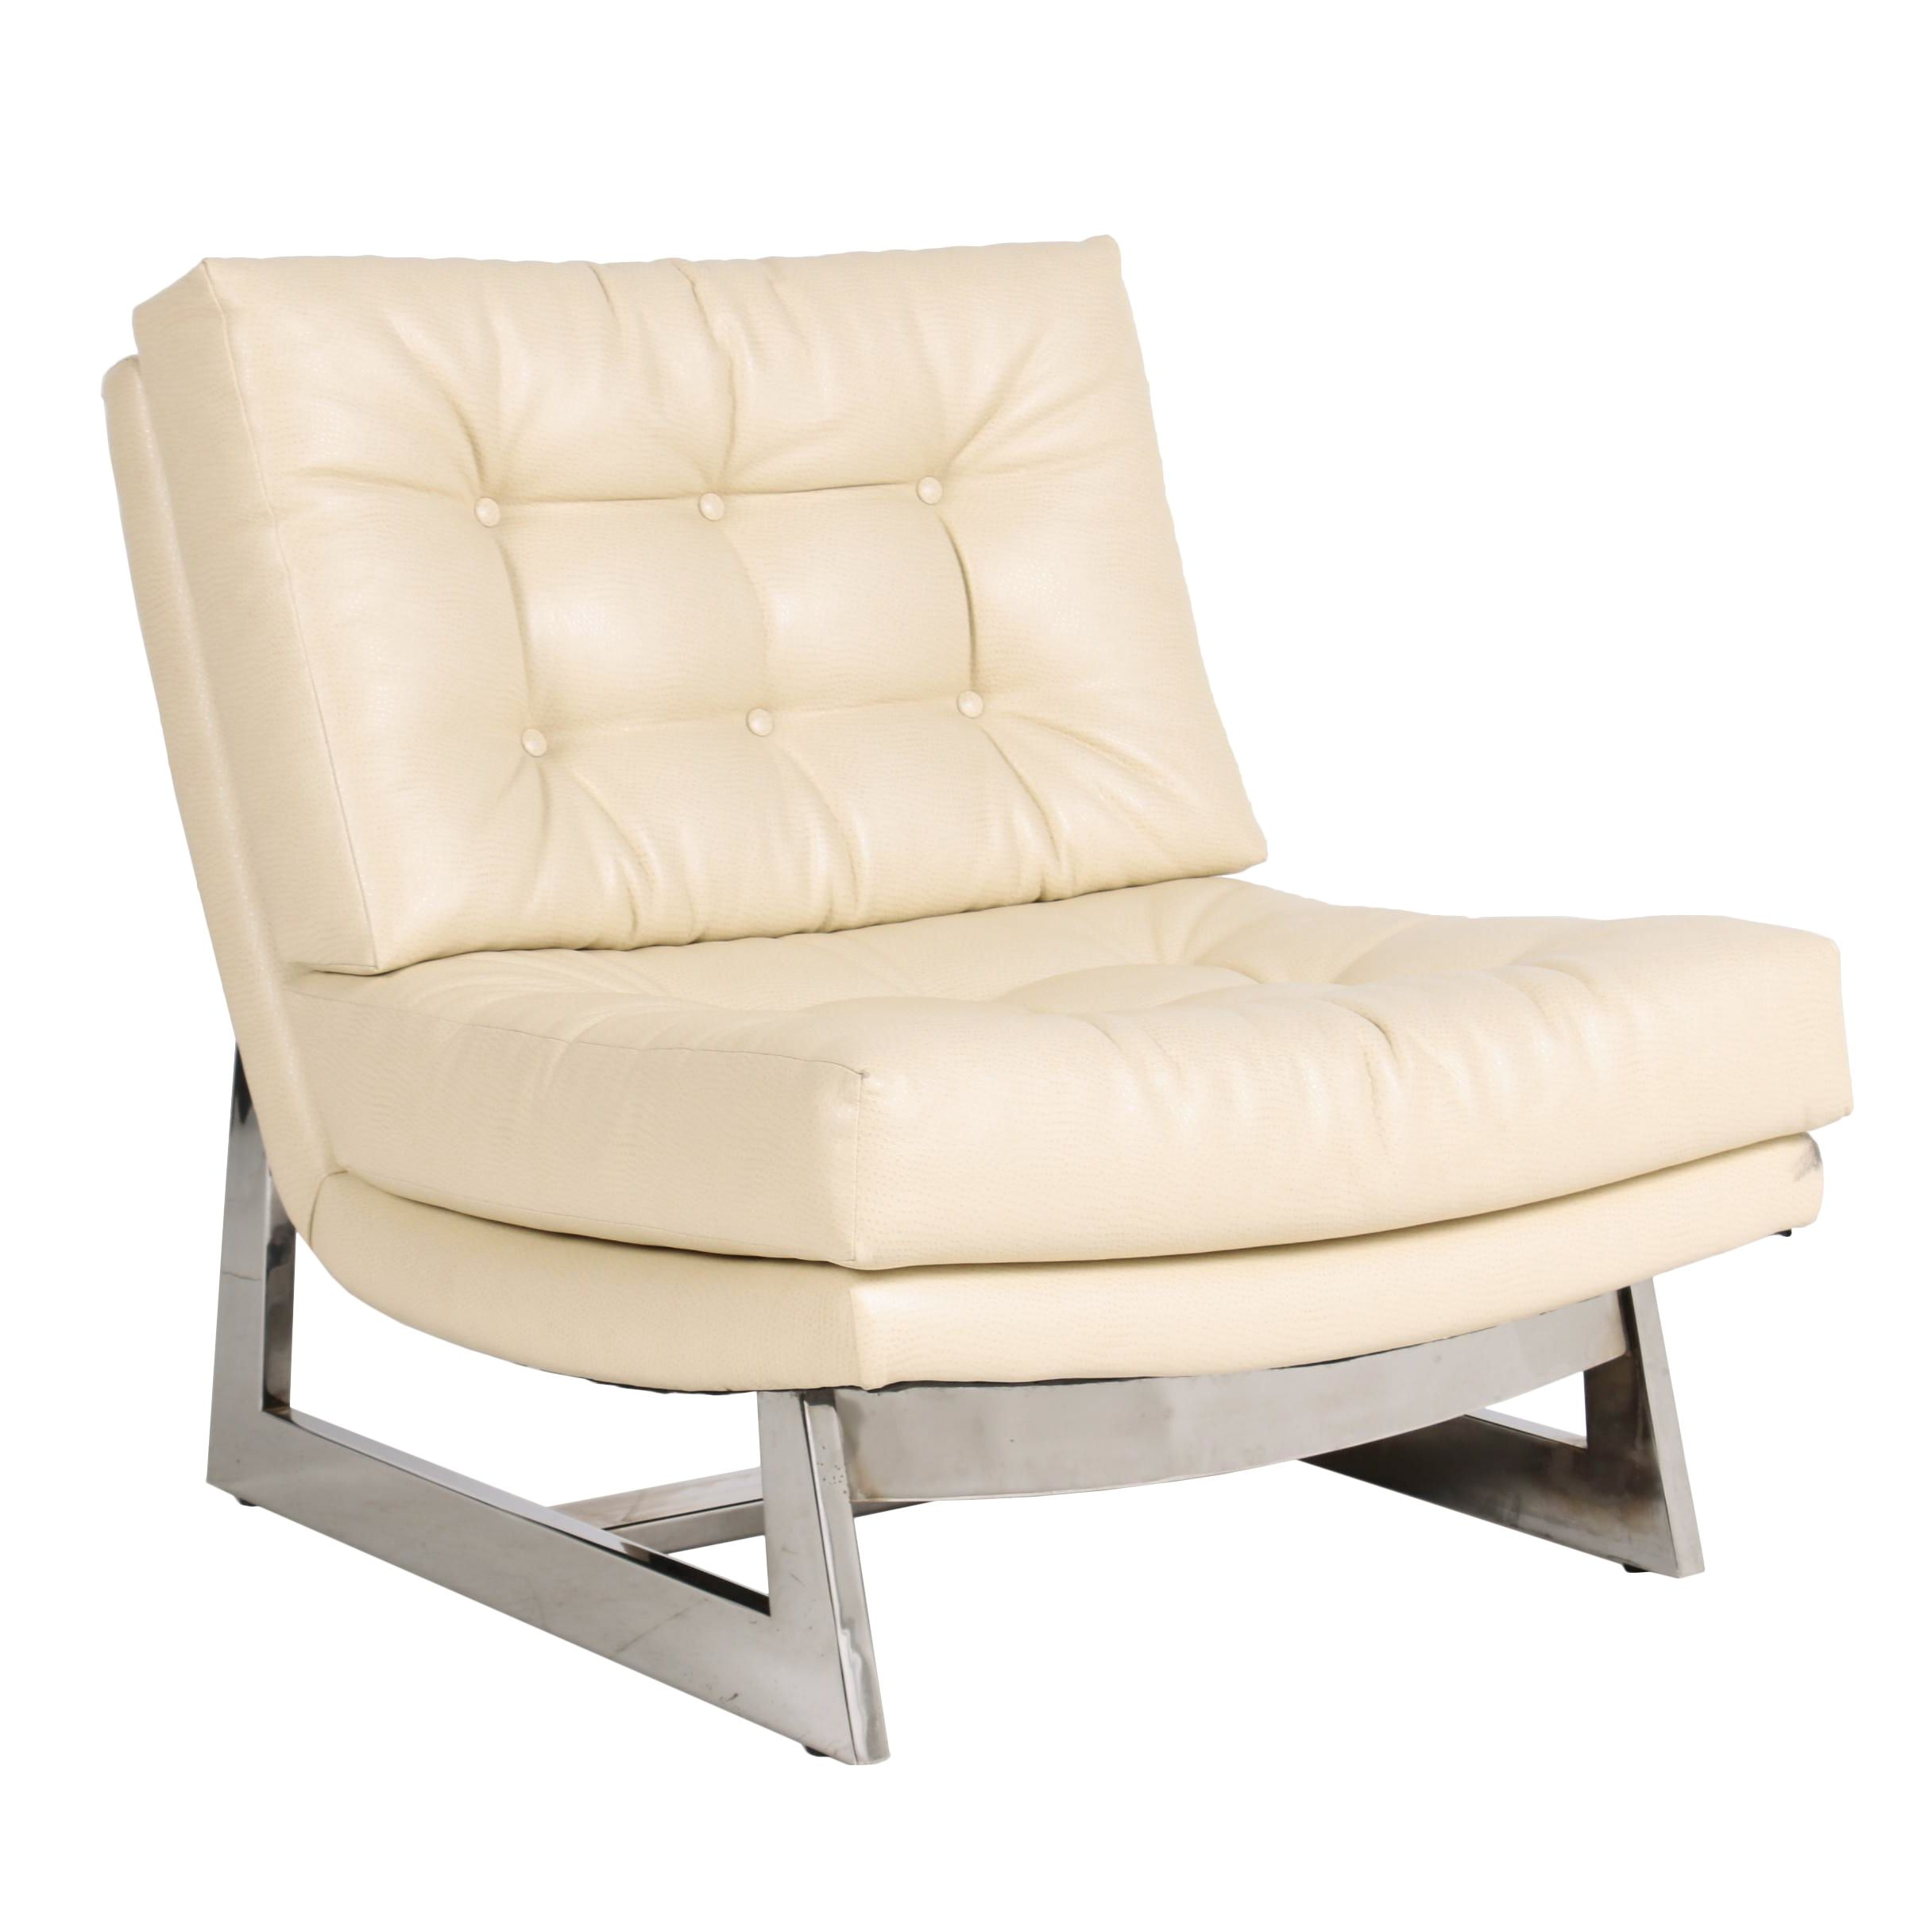 Modernist Style Faux-Ostrich Leather and Chrome Lounge Chair